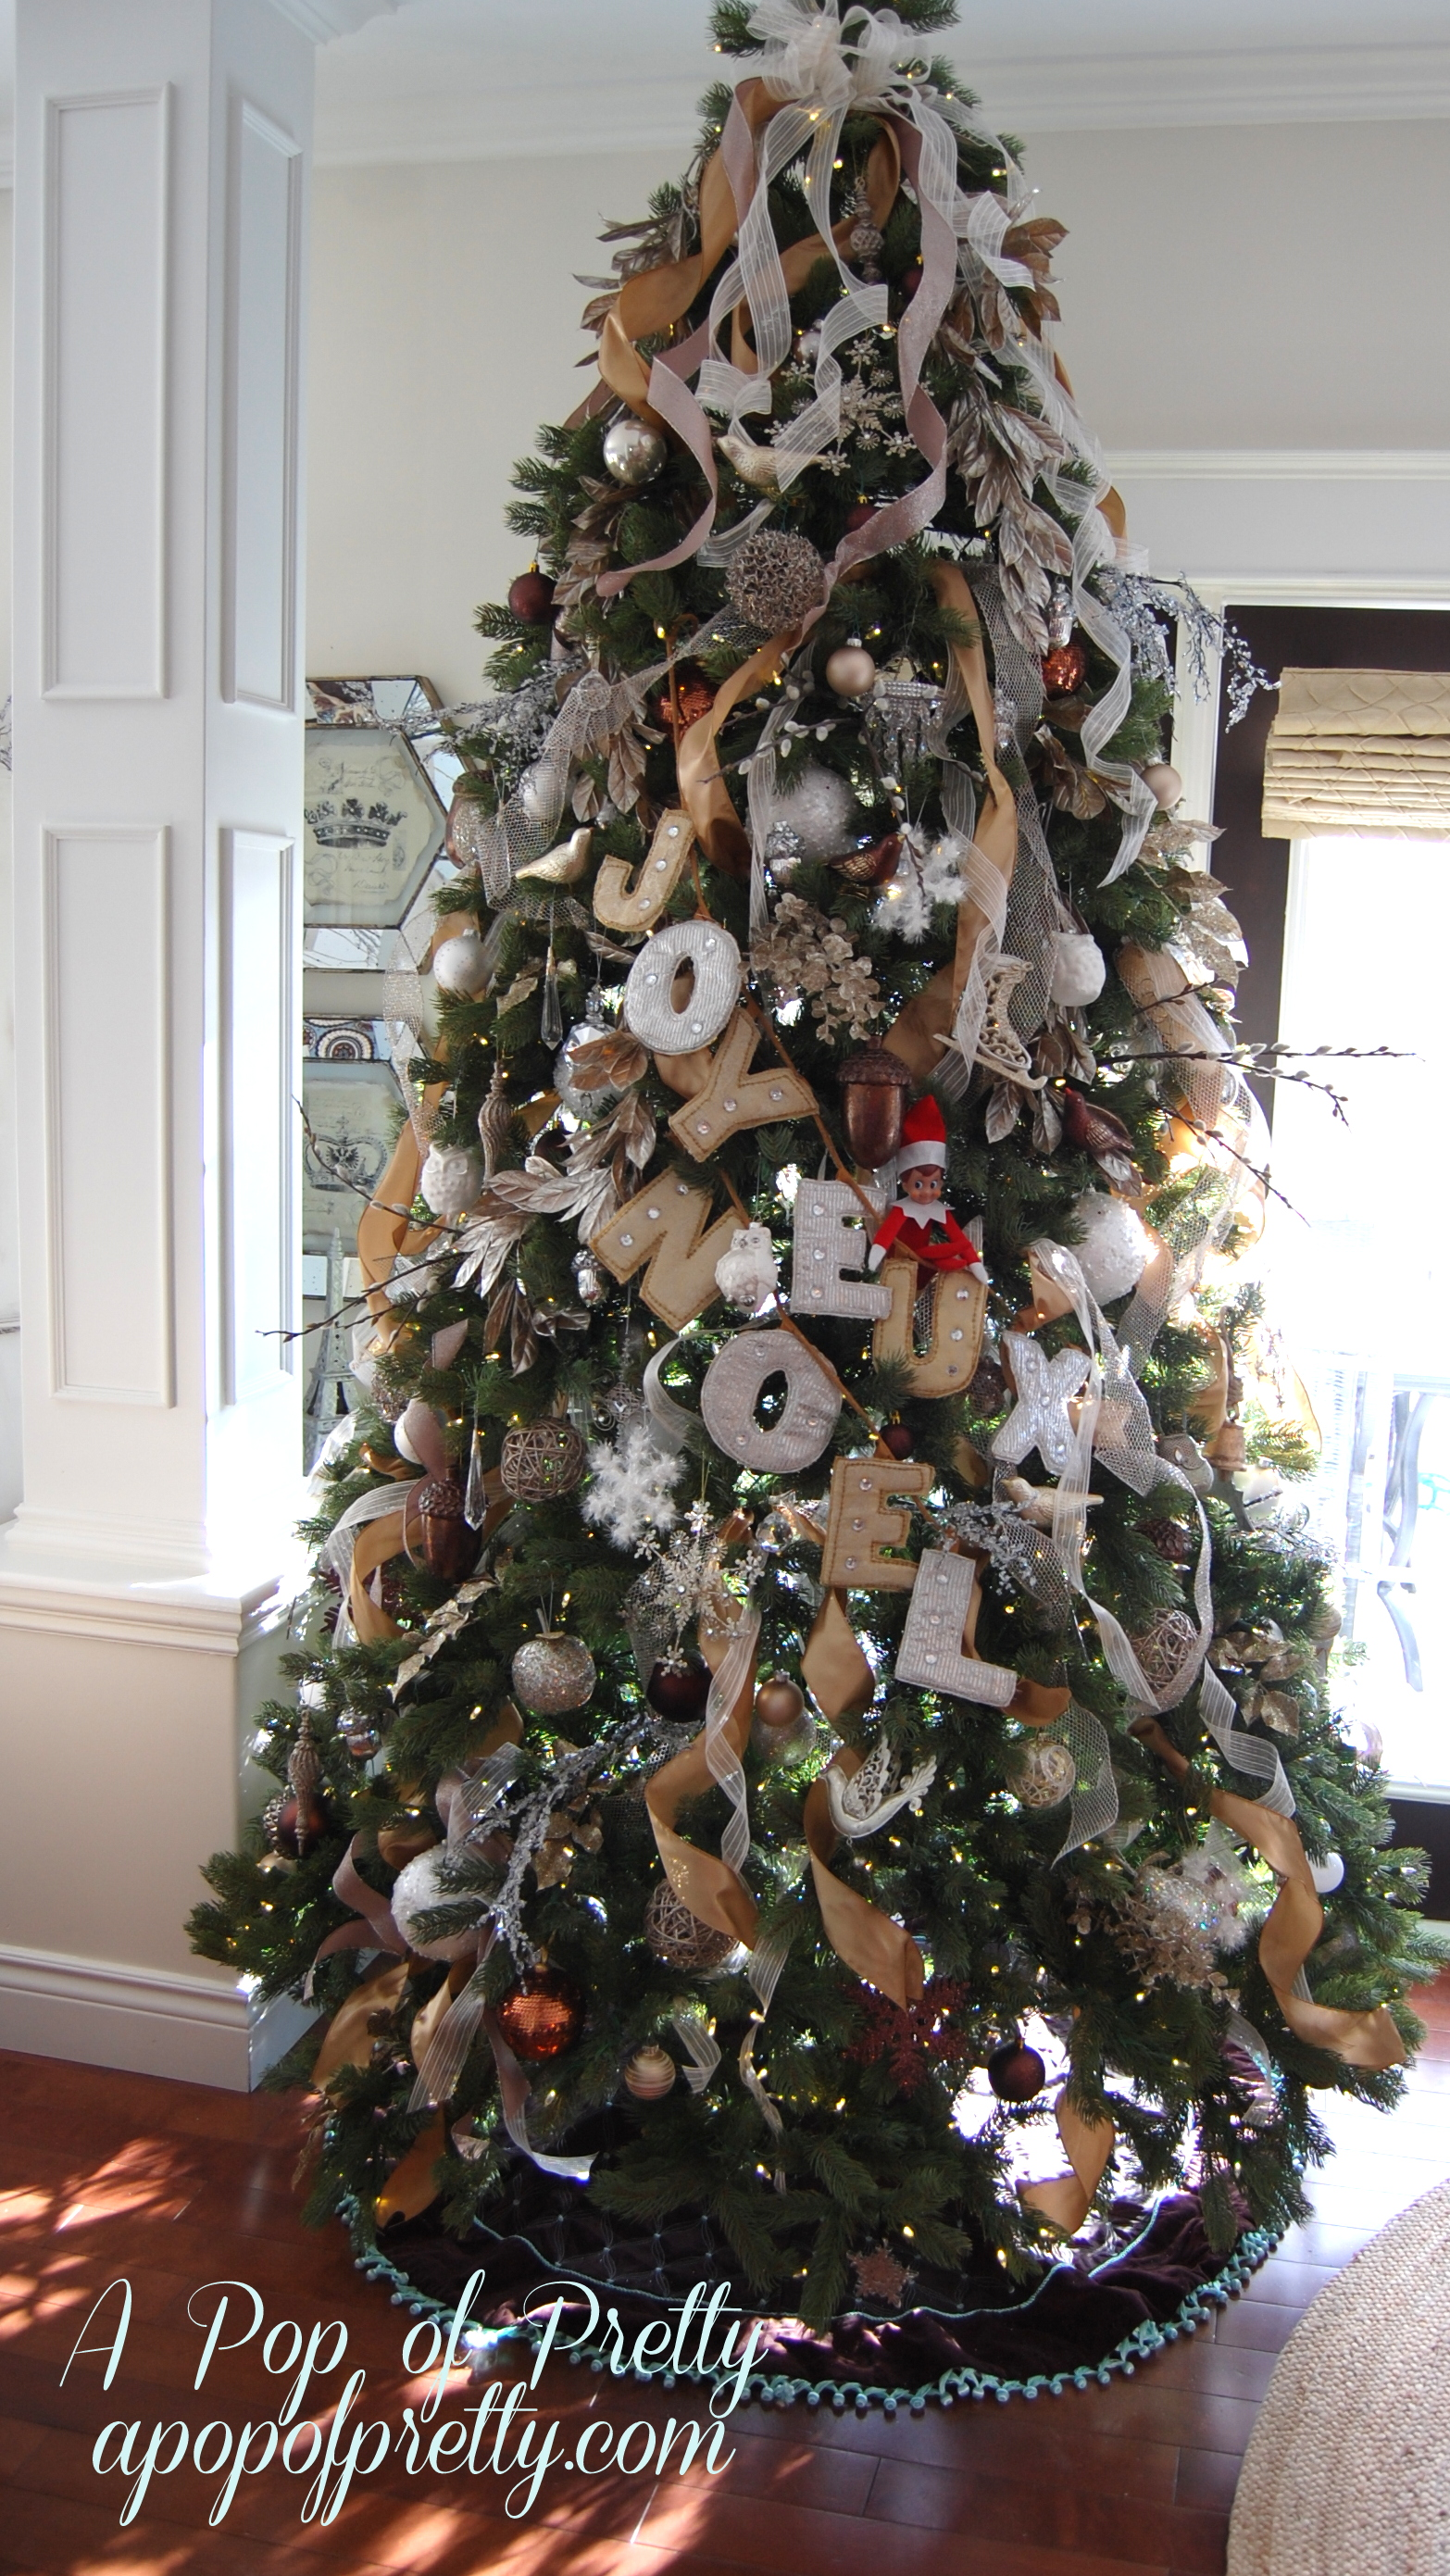 How To Put Ribbon On Christmas Tree.How To Add Ribbon Christmas Tree A Pop Of Pretty Home